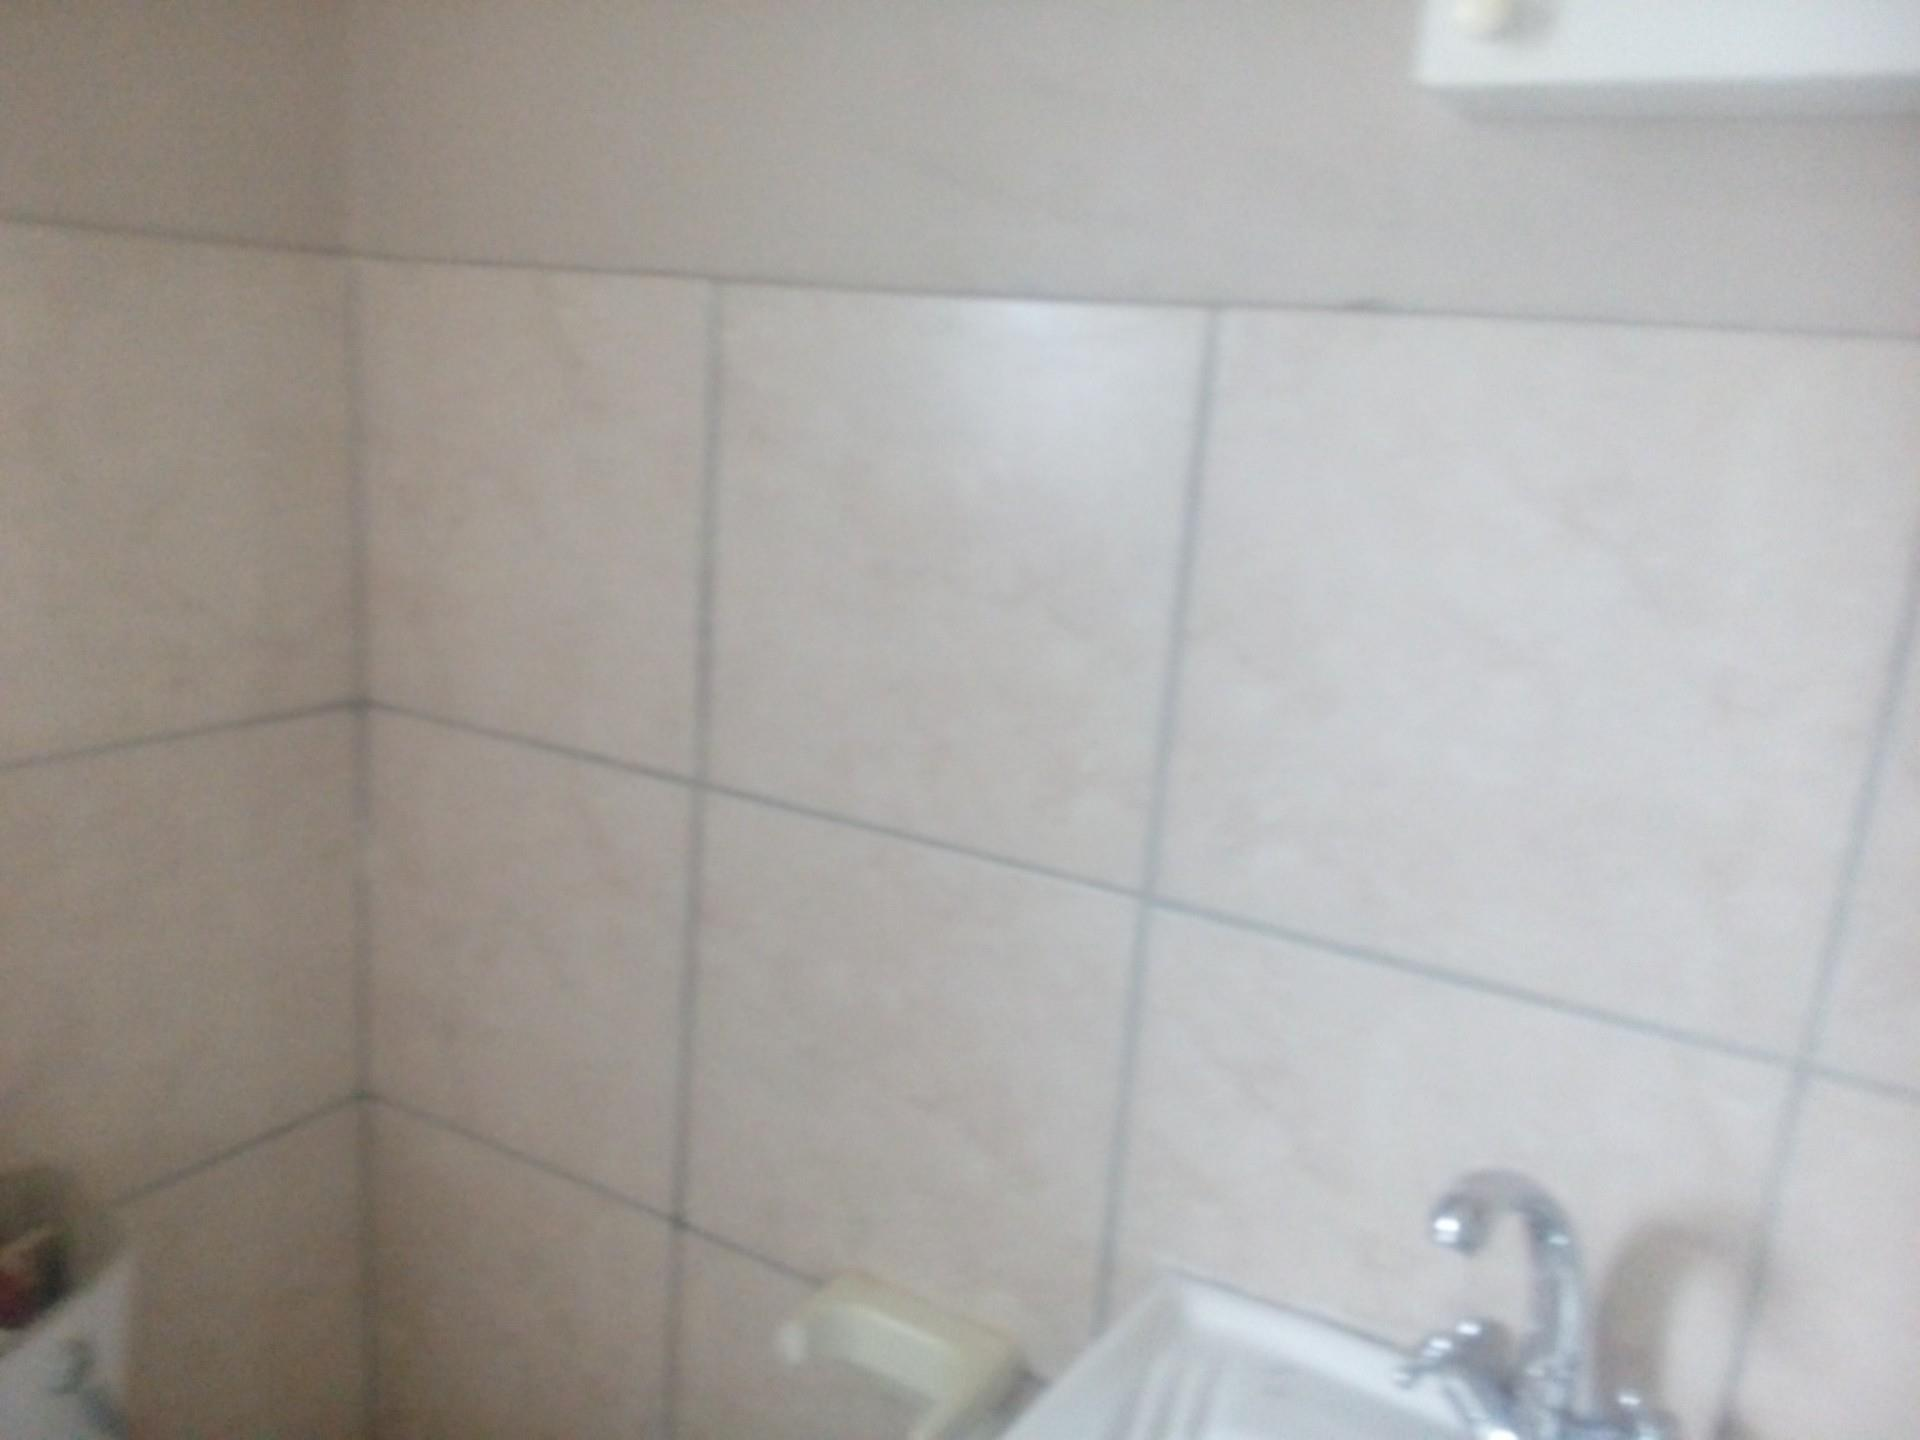 2 Bedroom Townhouse For Sale in Witbank Central